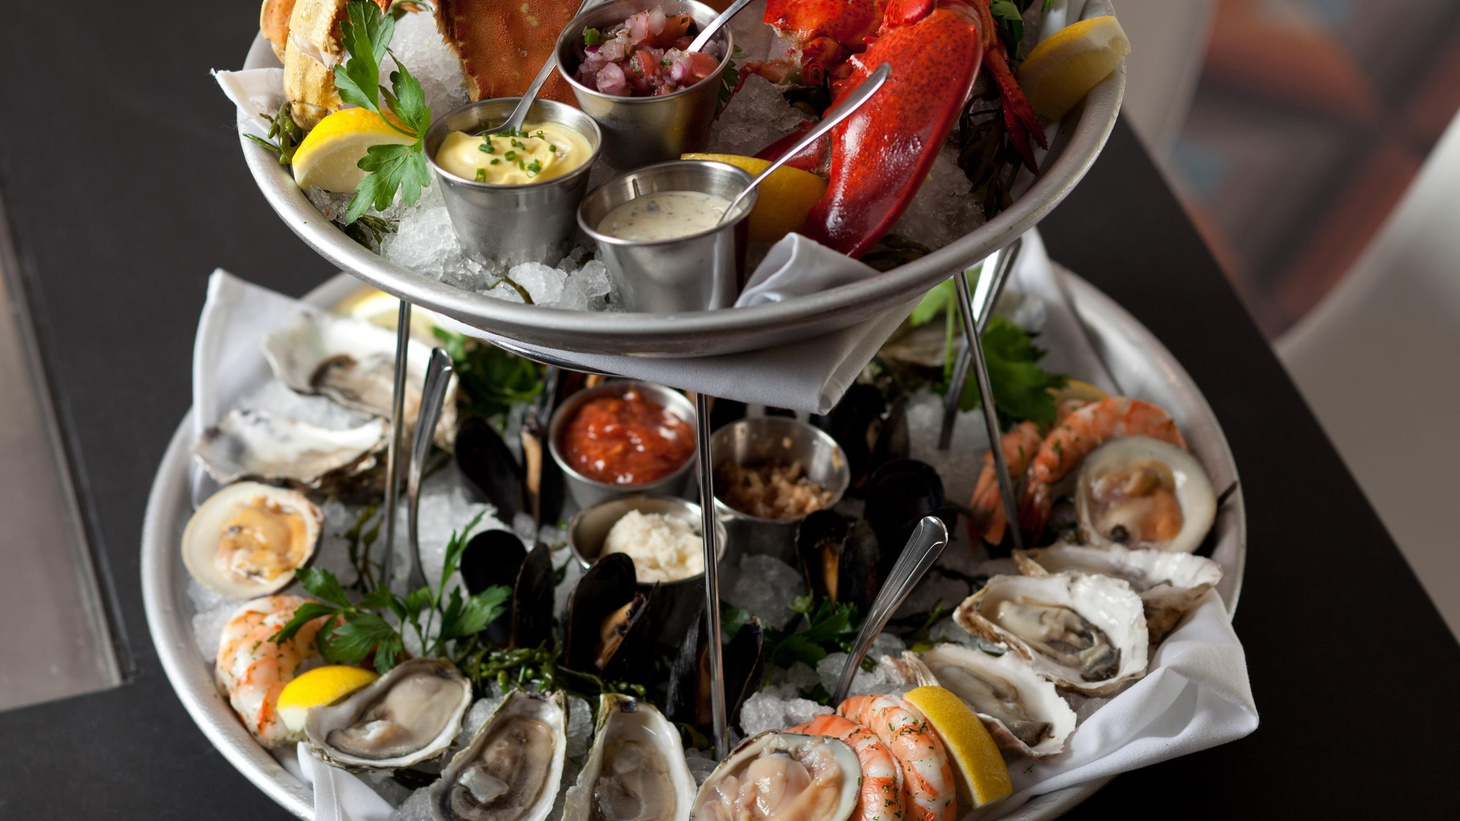 Why do east coast and west coast oysters taste different? A seafood obsessed chef explains what influences the flavor, texture and size of oysters.